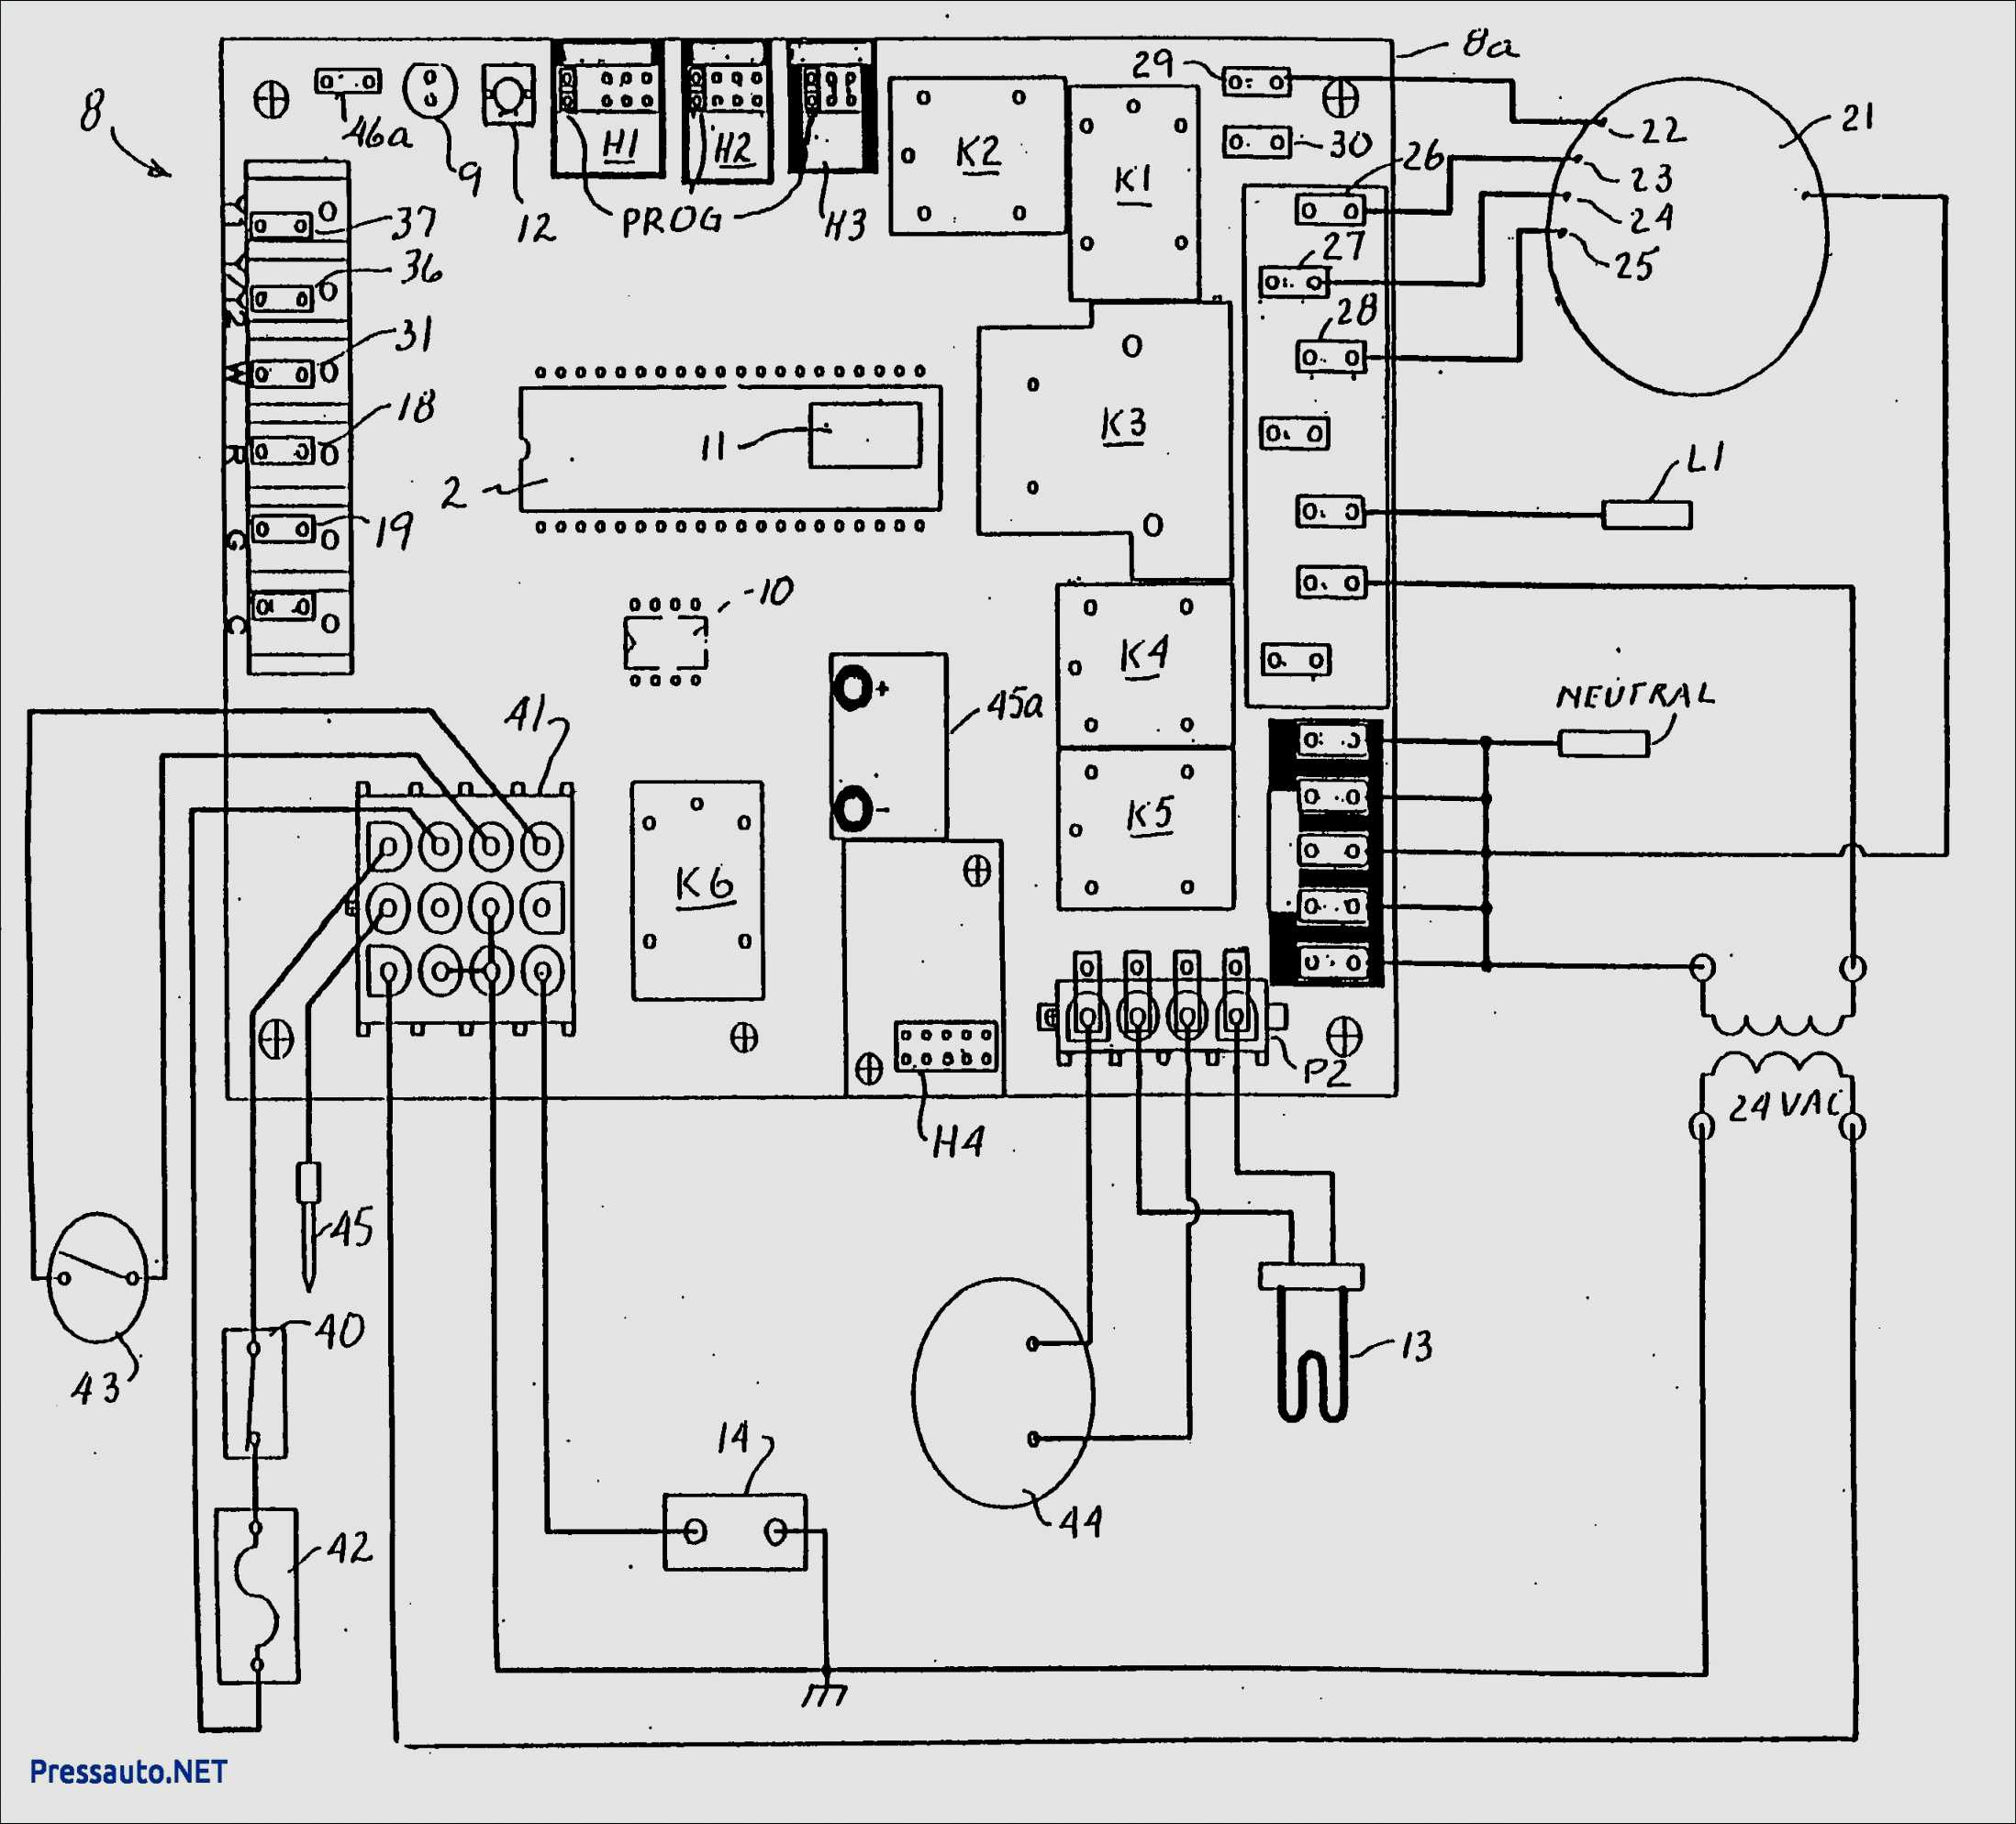 Wiring Diagram Nest Nest Heat Pump